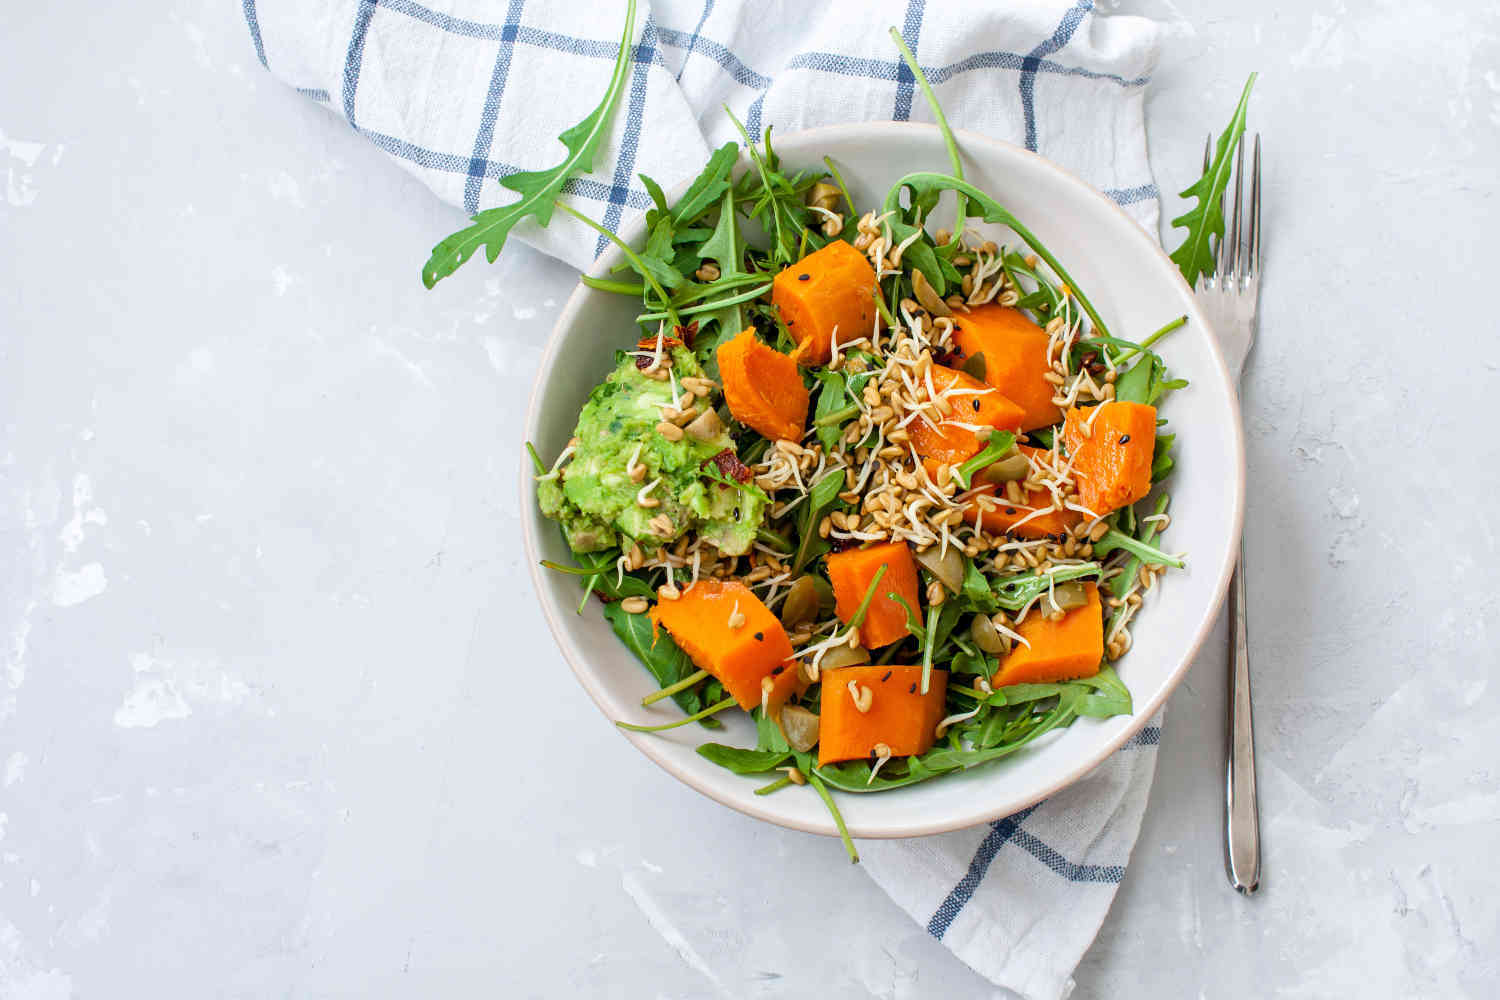 Bodytrim-Kumara-Spinach-Salad-Weight-loss-Recipe-Image